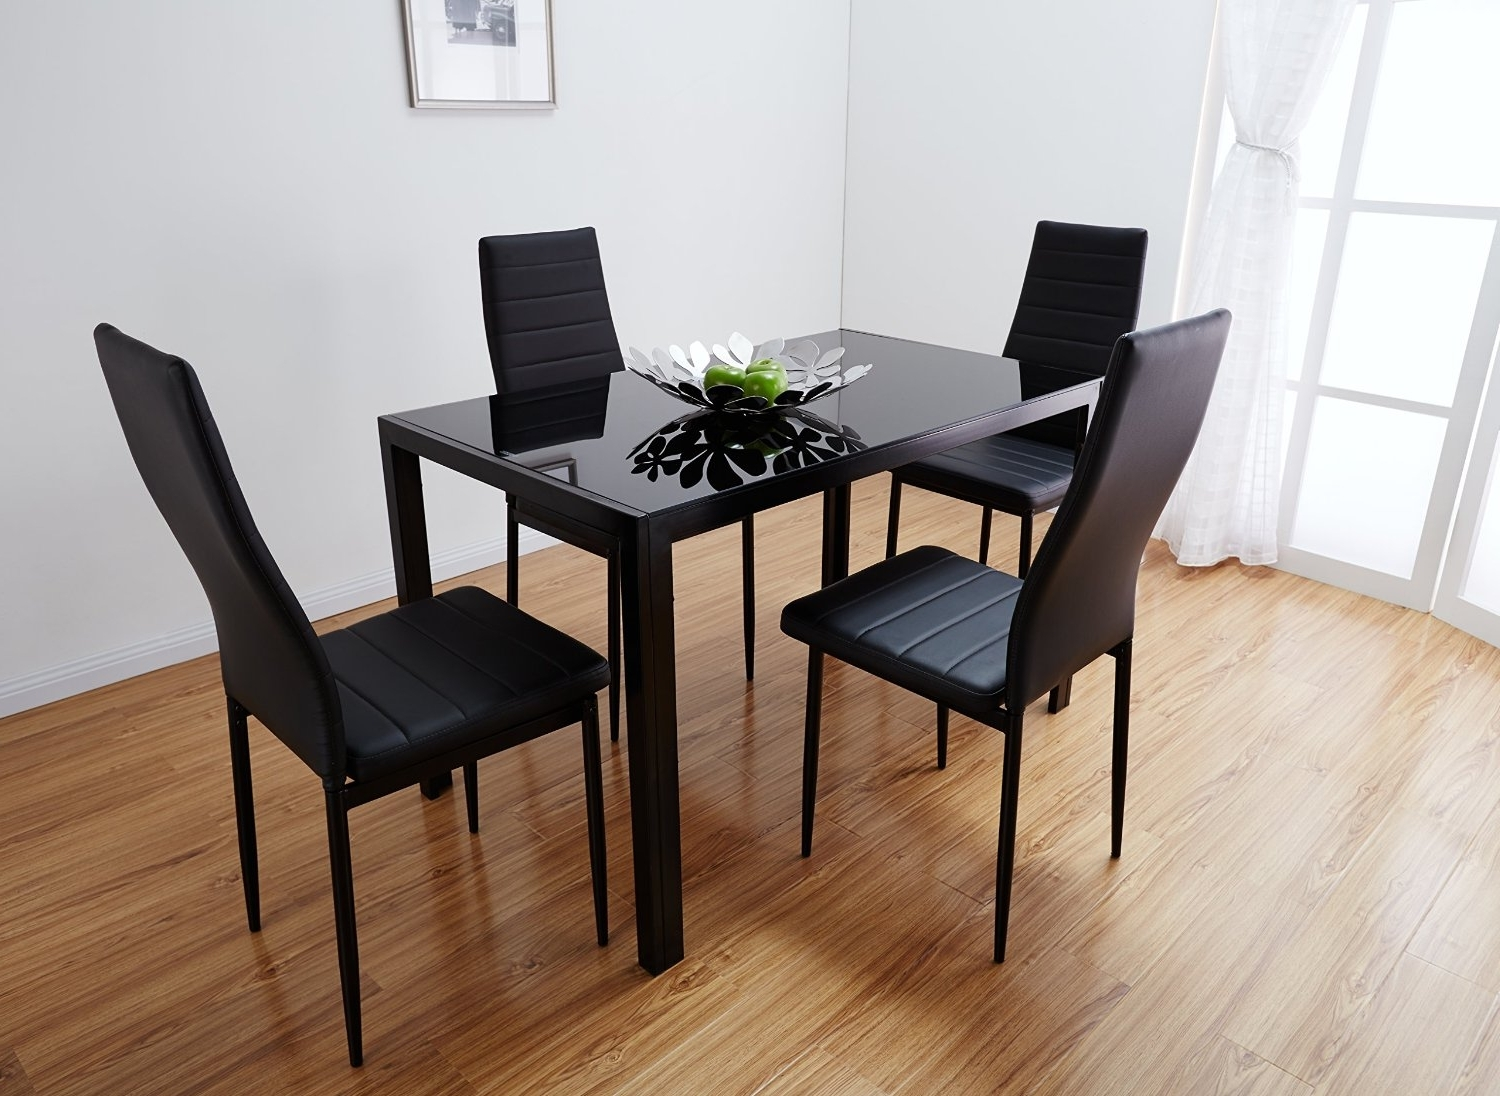 Round Black Glass Dining Tables And 4 Chairs Throughout Popular Glass Top Black Dining Table : Ugarelay – Black Dining Table Furniture (View 13 of 25)